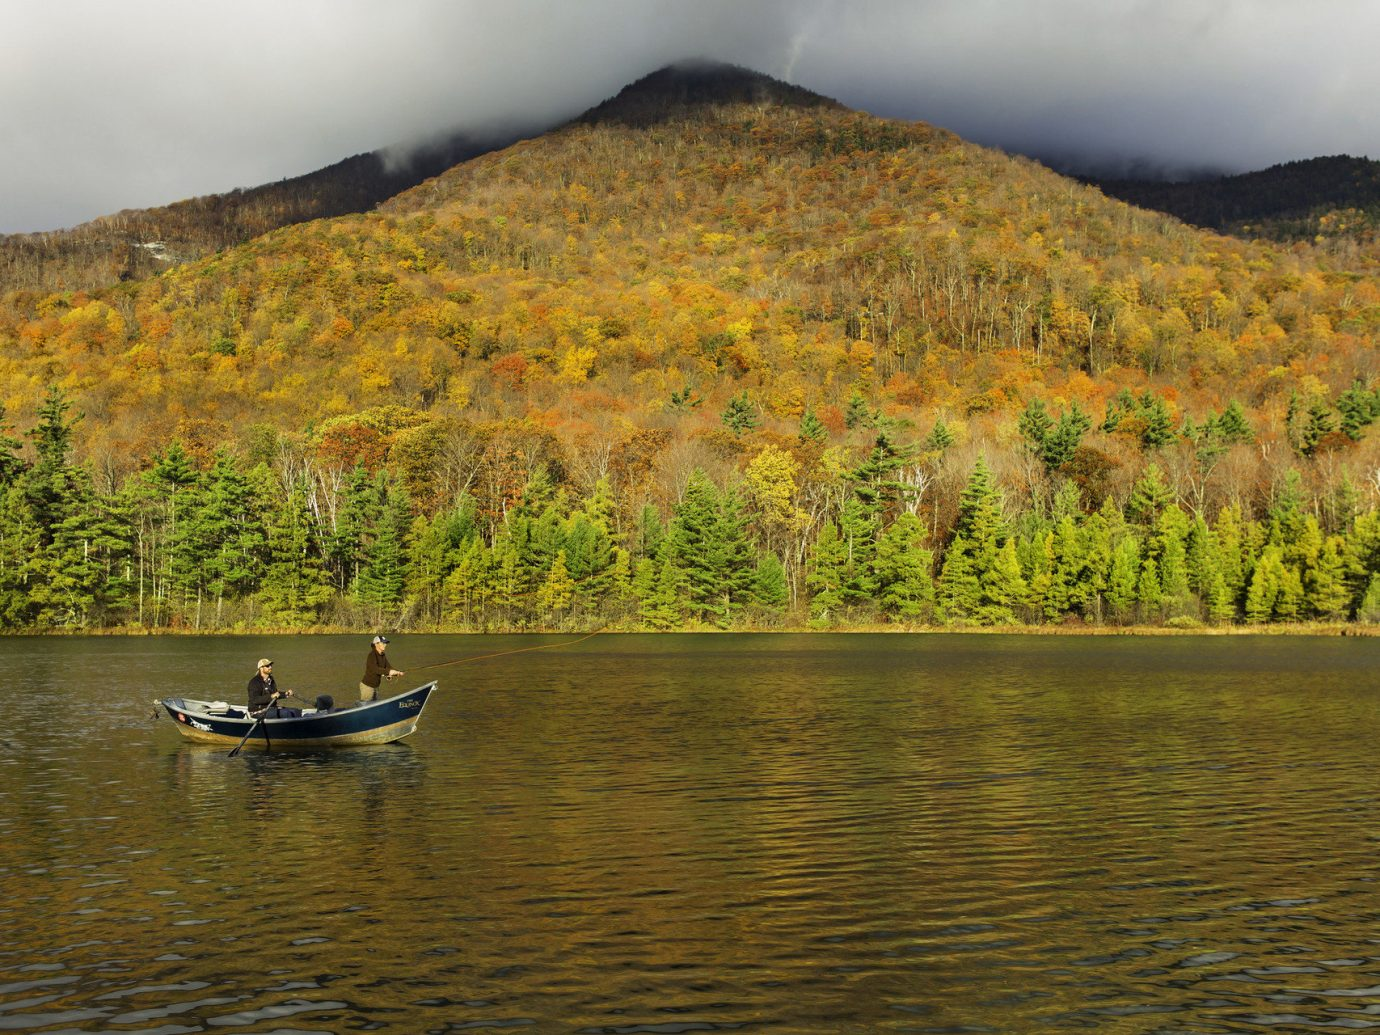 autumn Boat clouds cloudy Fall Greenery hills Hotels isolation Lake Luxury Travel Mountains Nature Outdoor Activities Outdoors people remote River row boats rowers Rowing trees water outdoor sky mountain wilderness tree reflection loch morning leaf background landscape reservoir boating surrounded distance